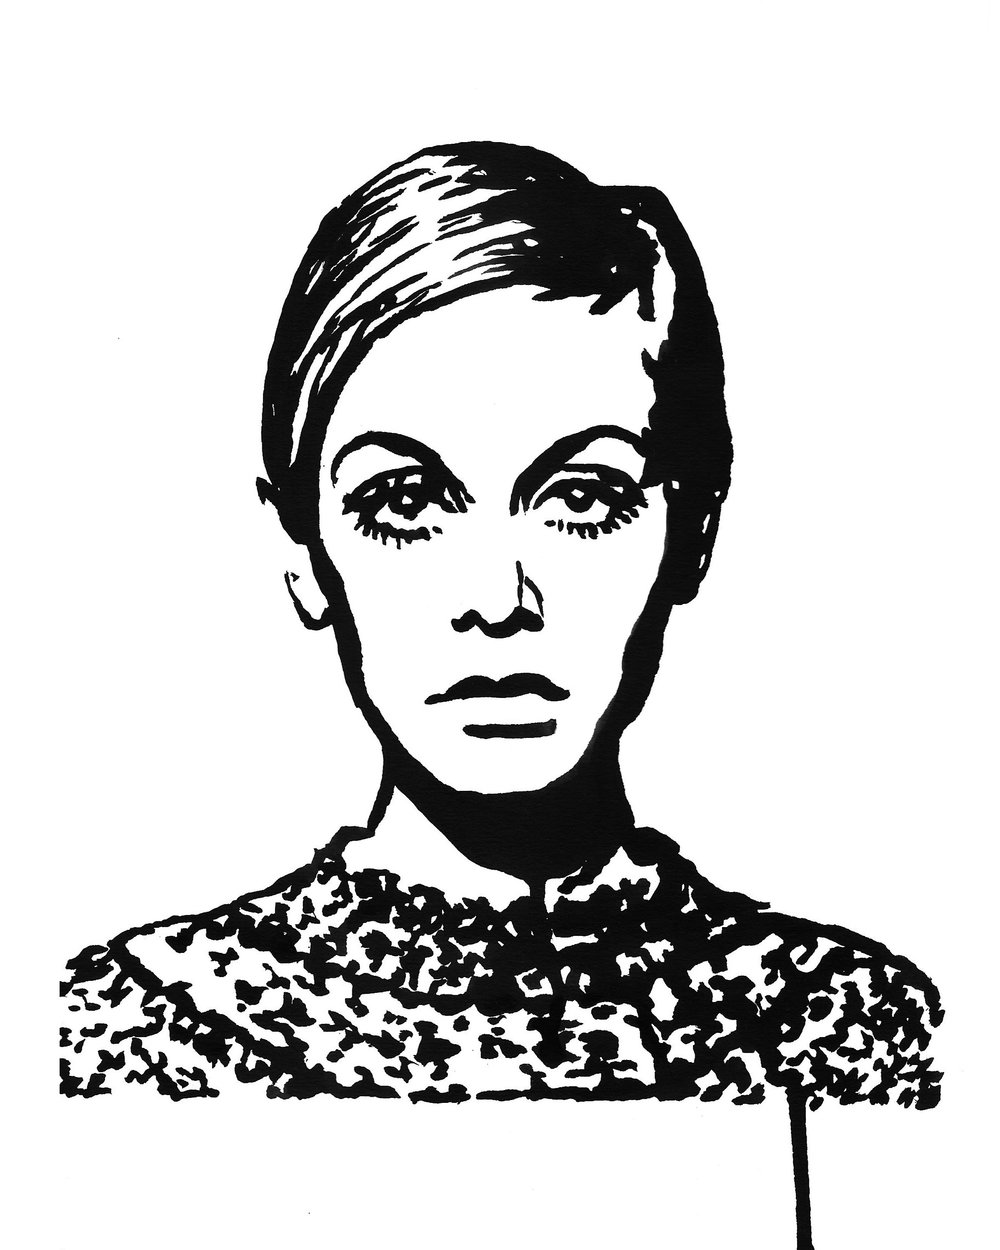 "Twiggy in a Sweater 9"" x 12"" ink on paper"